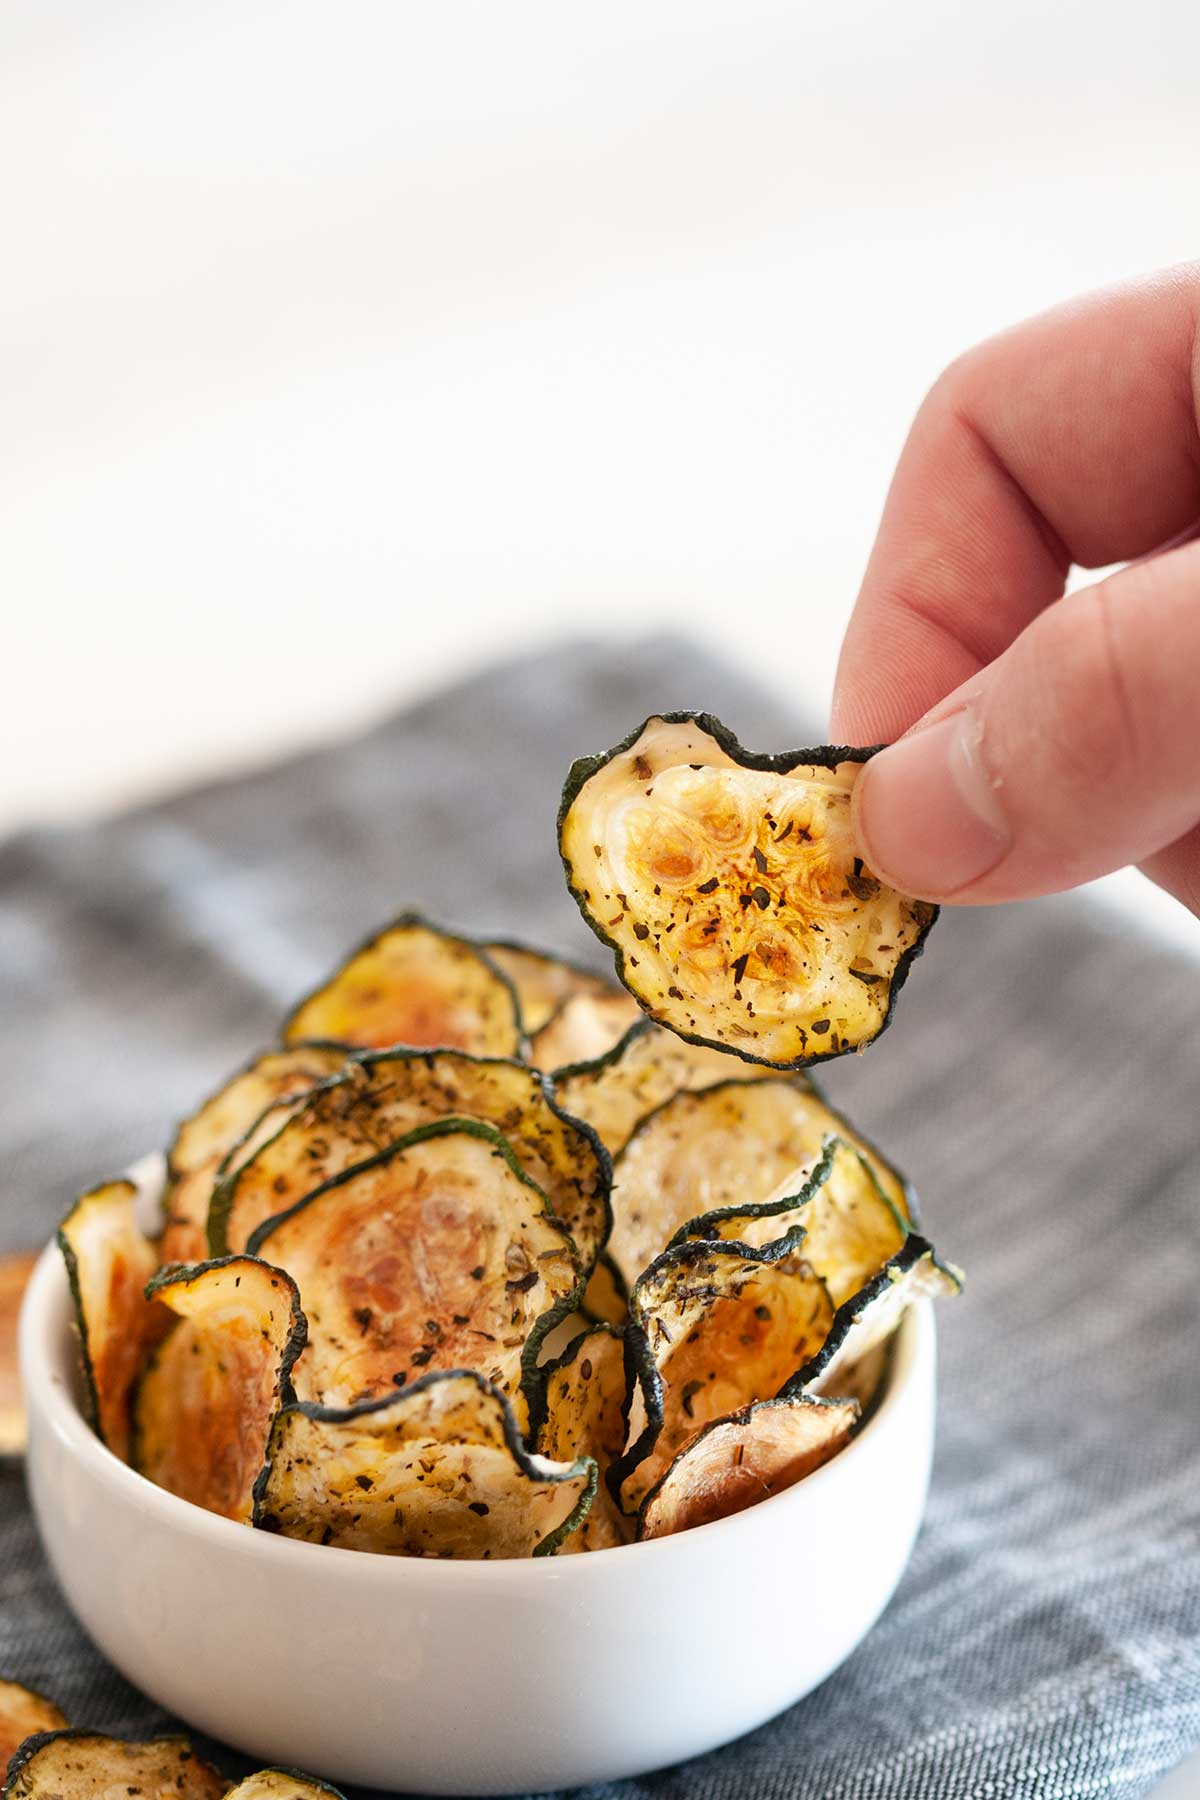 hand grabbing a zucchini chip from a bowl